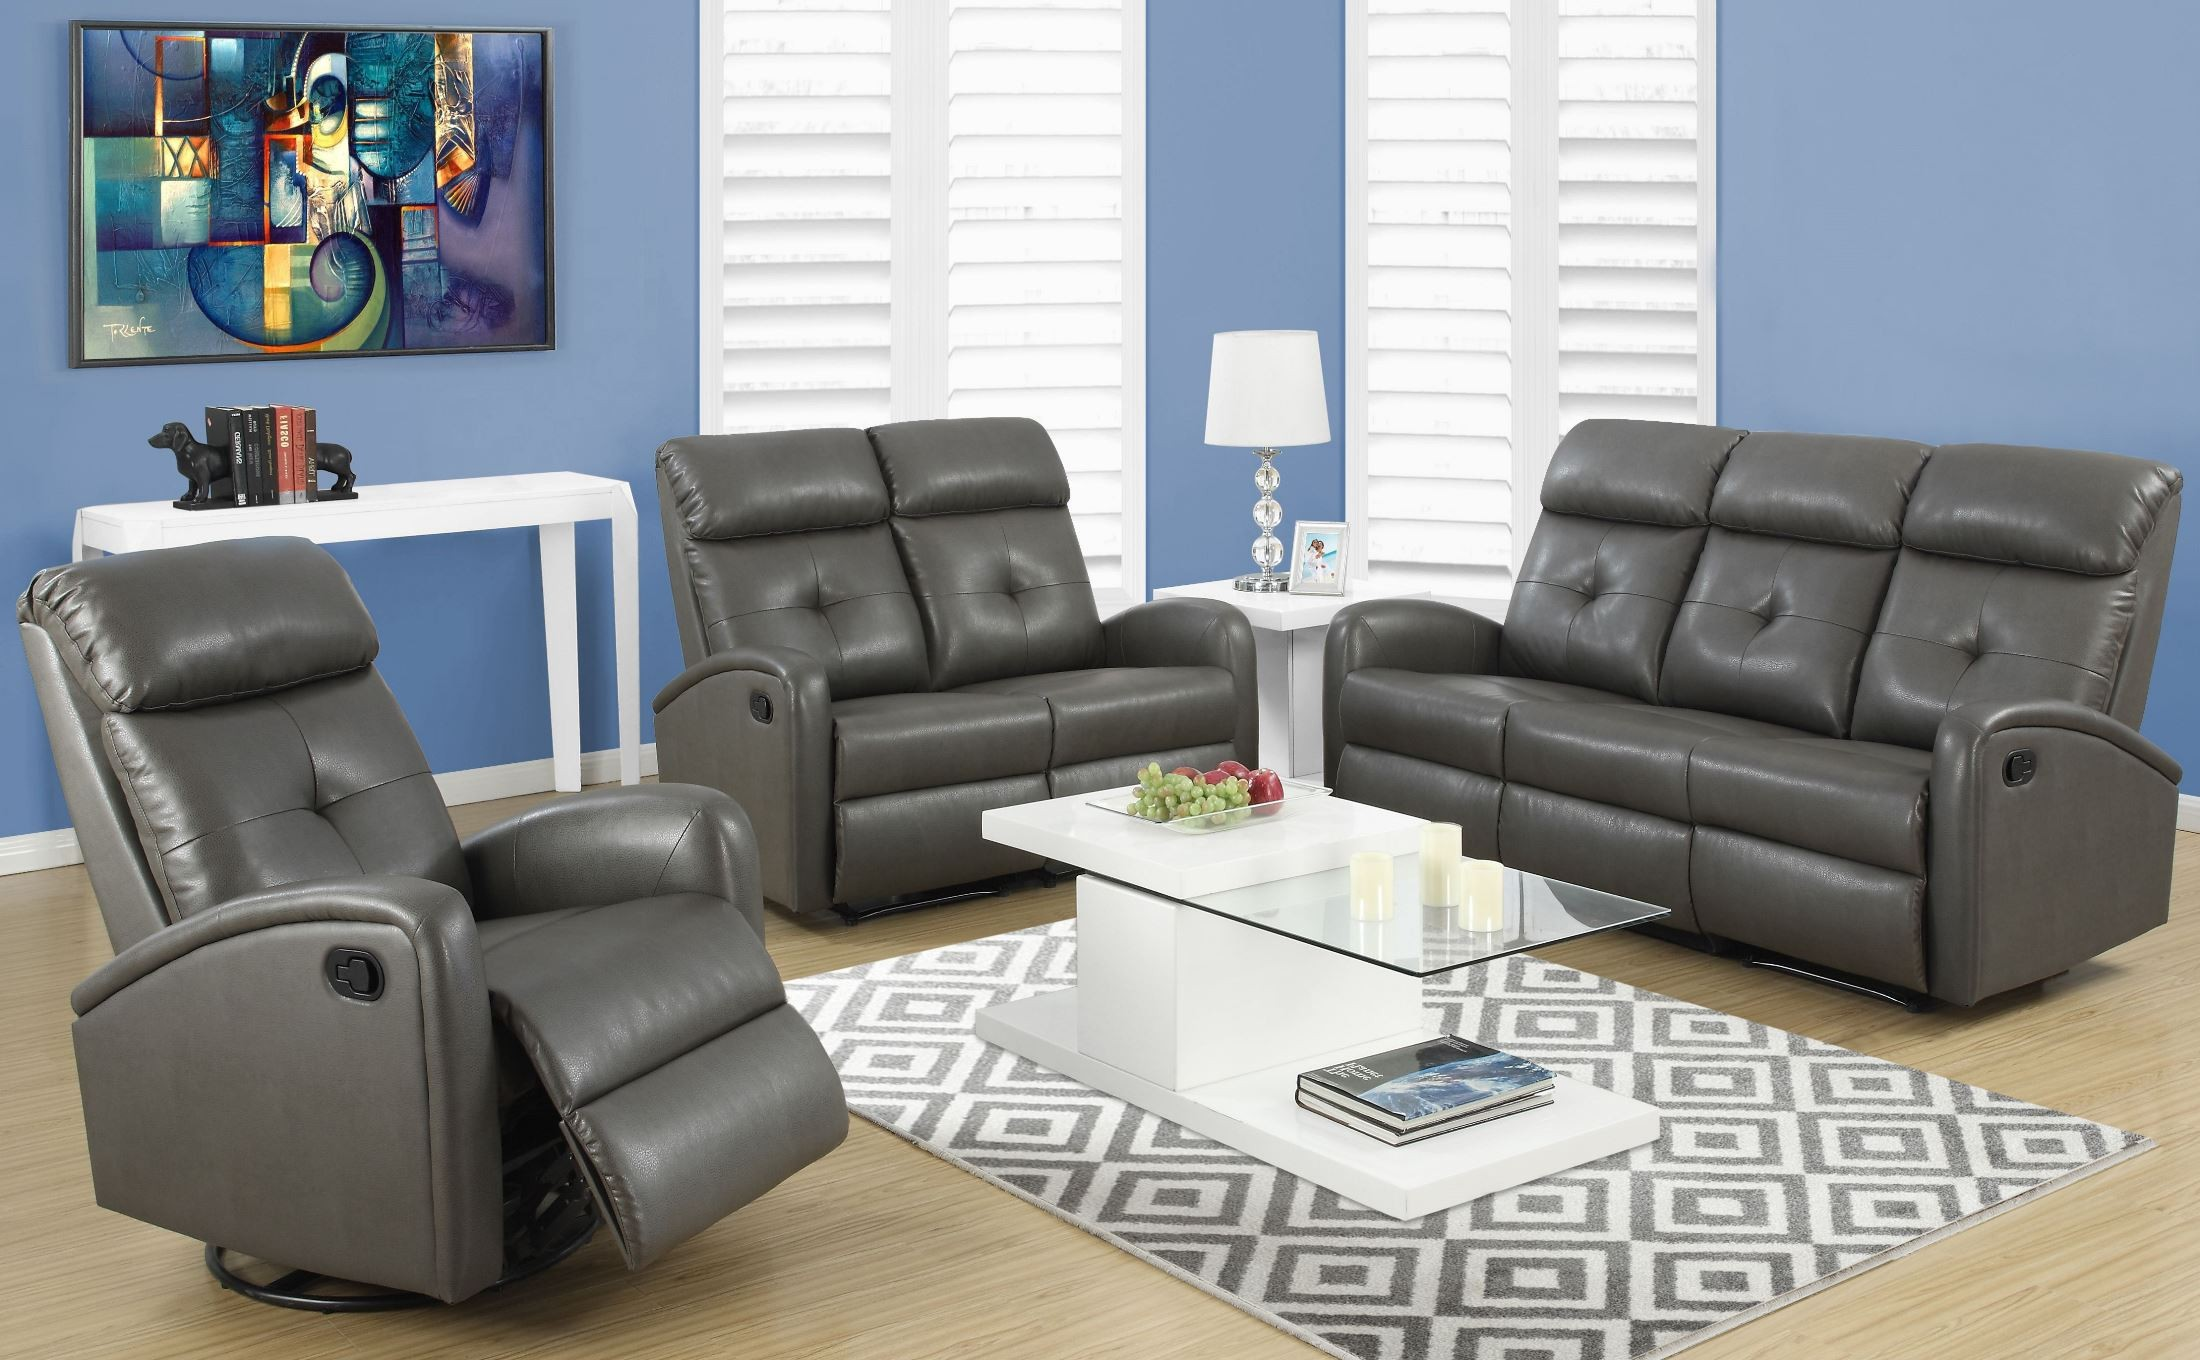 88gy 3 Charcoal Gray Bonded Leather Reclining Living Room: reclining living room furniture